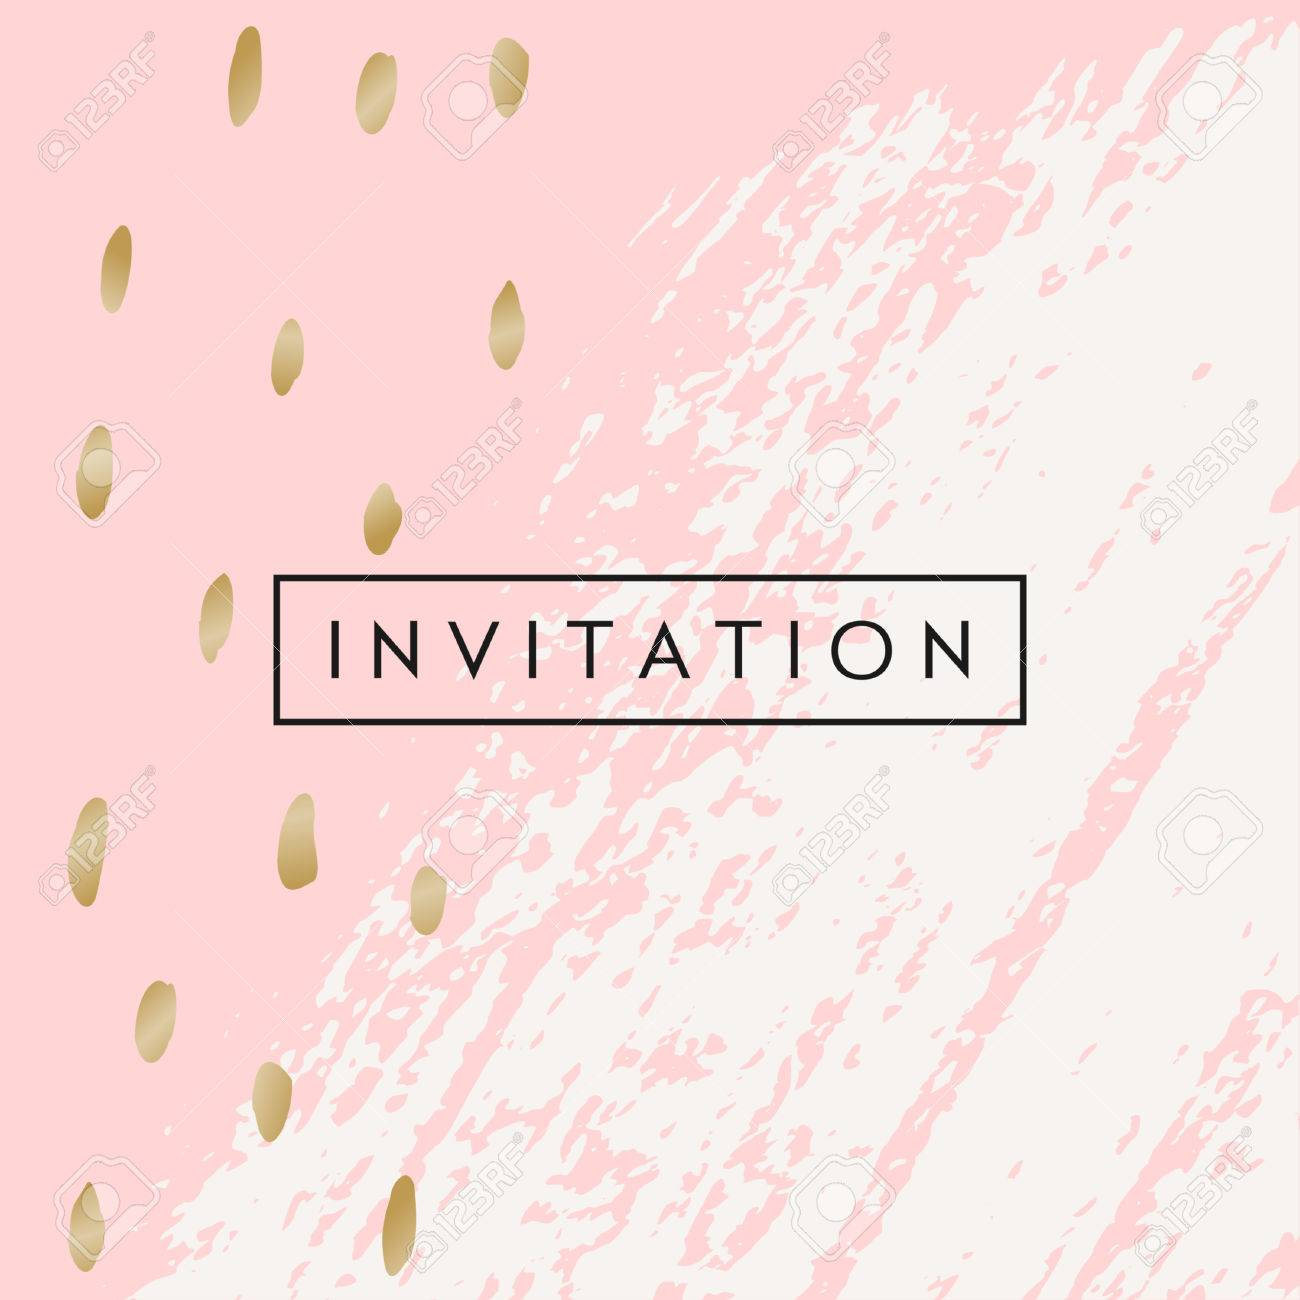 Hand Drawn Brush Strokes Invitation Designs Pastel Pink Offwhite